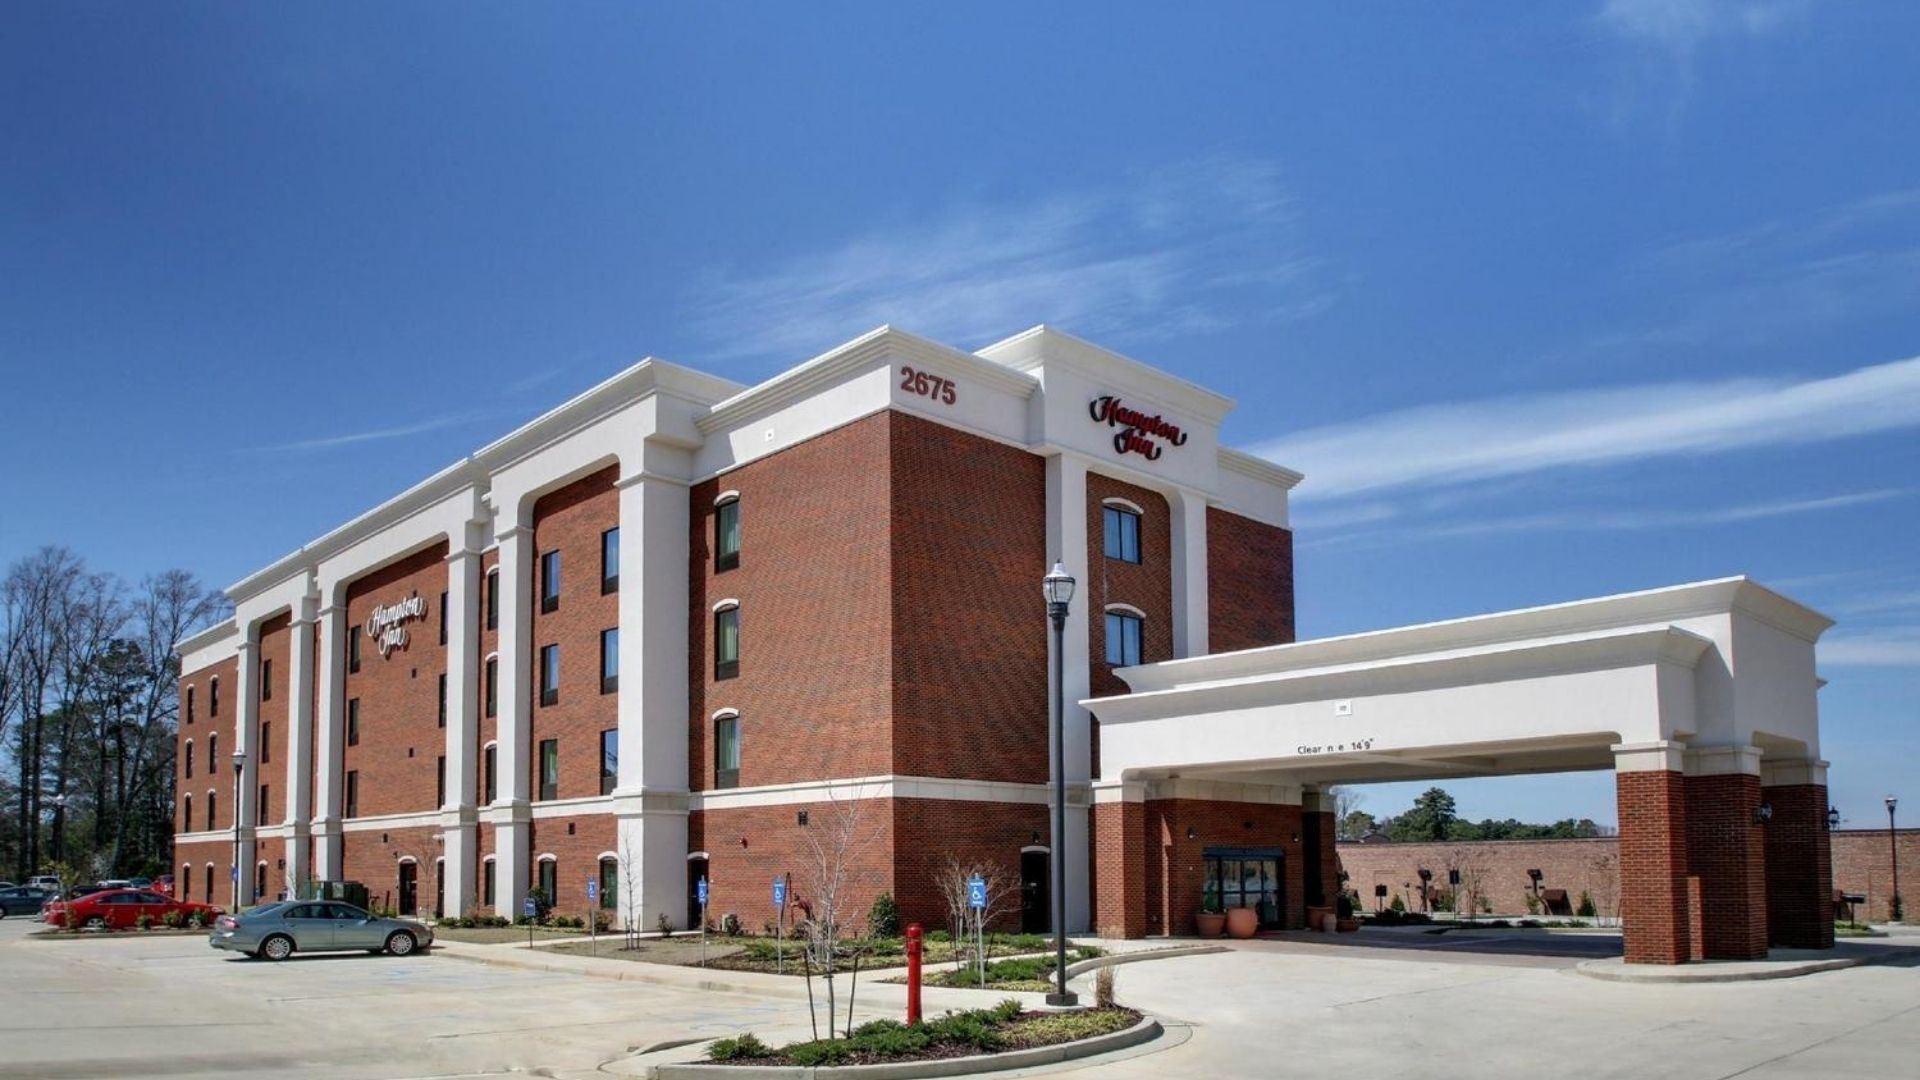 hampton inn hernando ms Resized